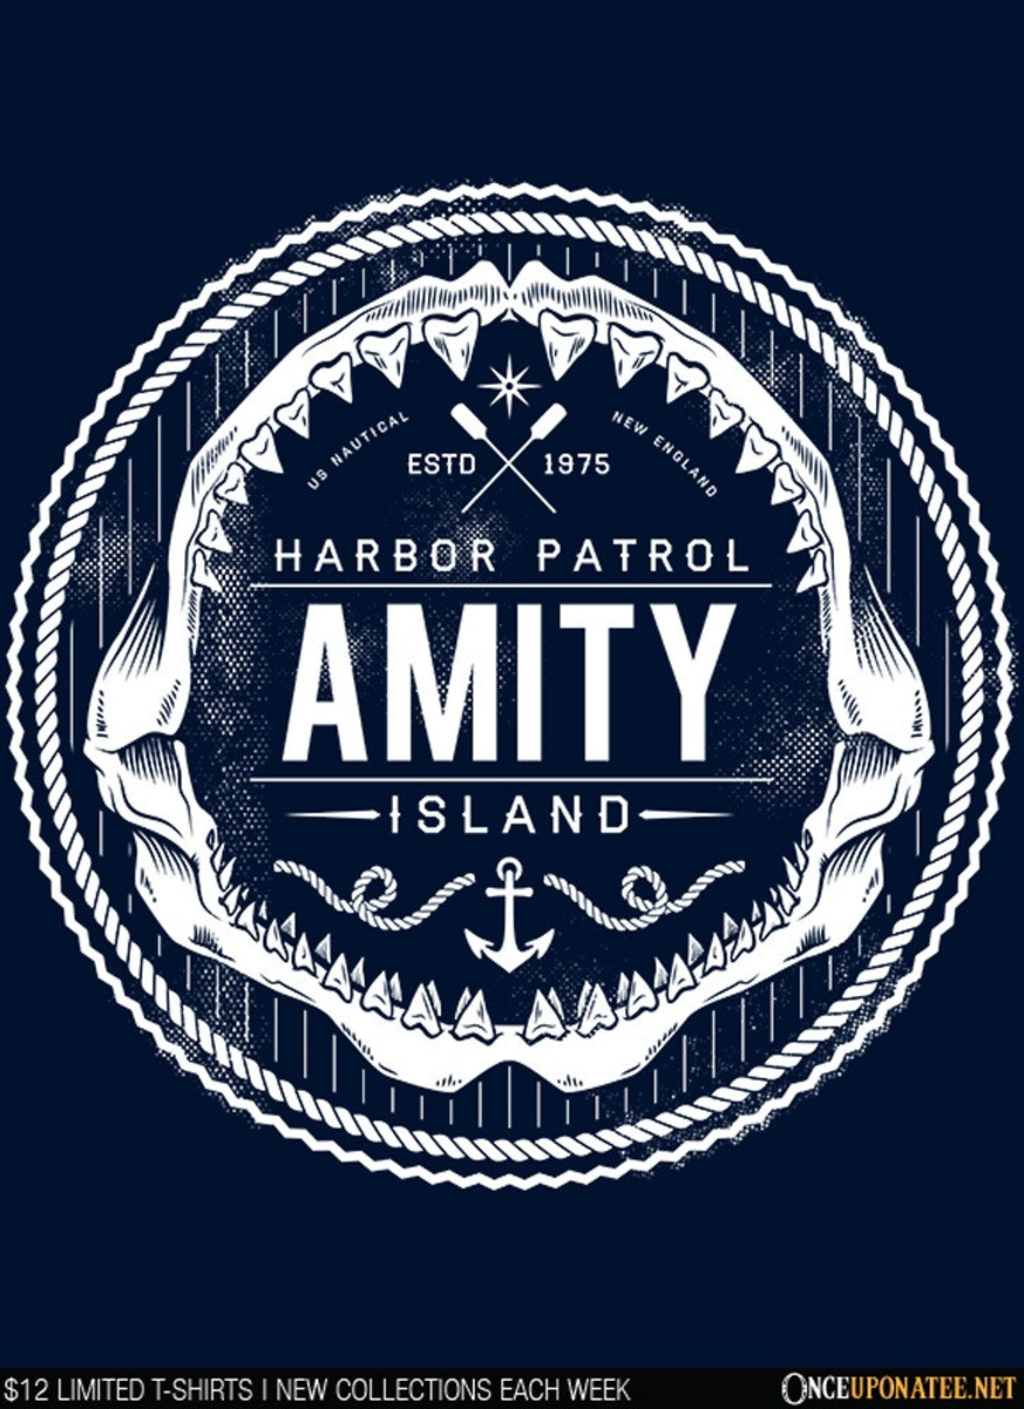 Once Upon a Tee: Amity Island Harbor Patrol